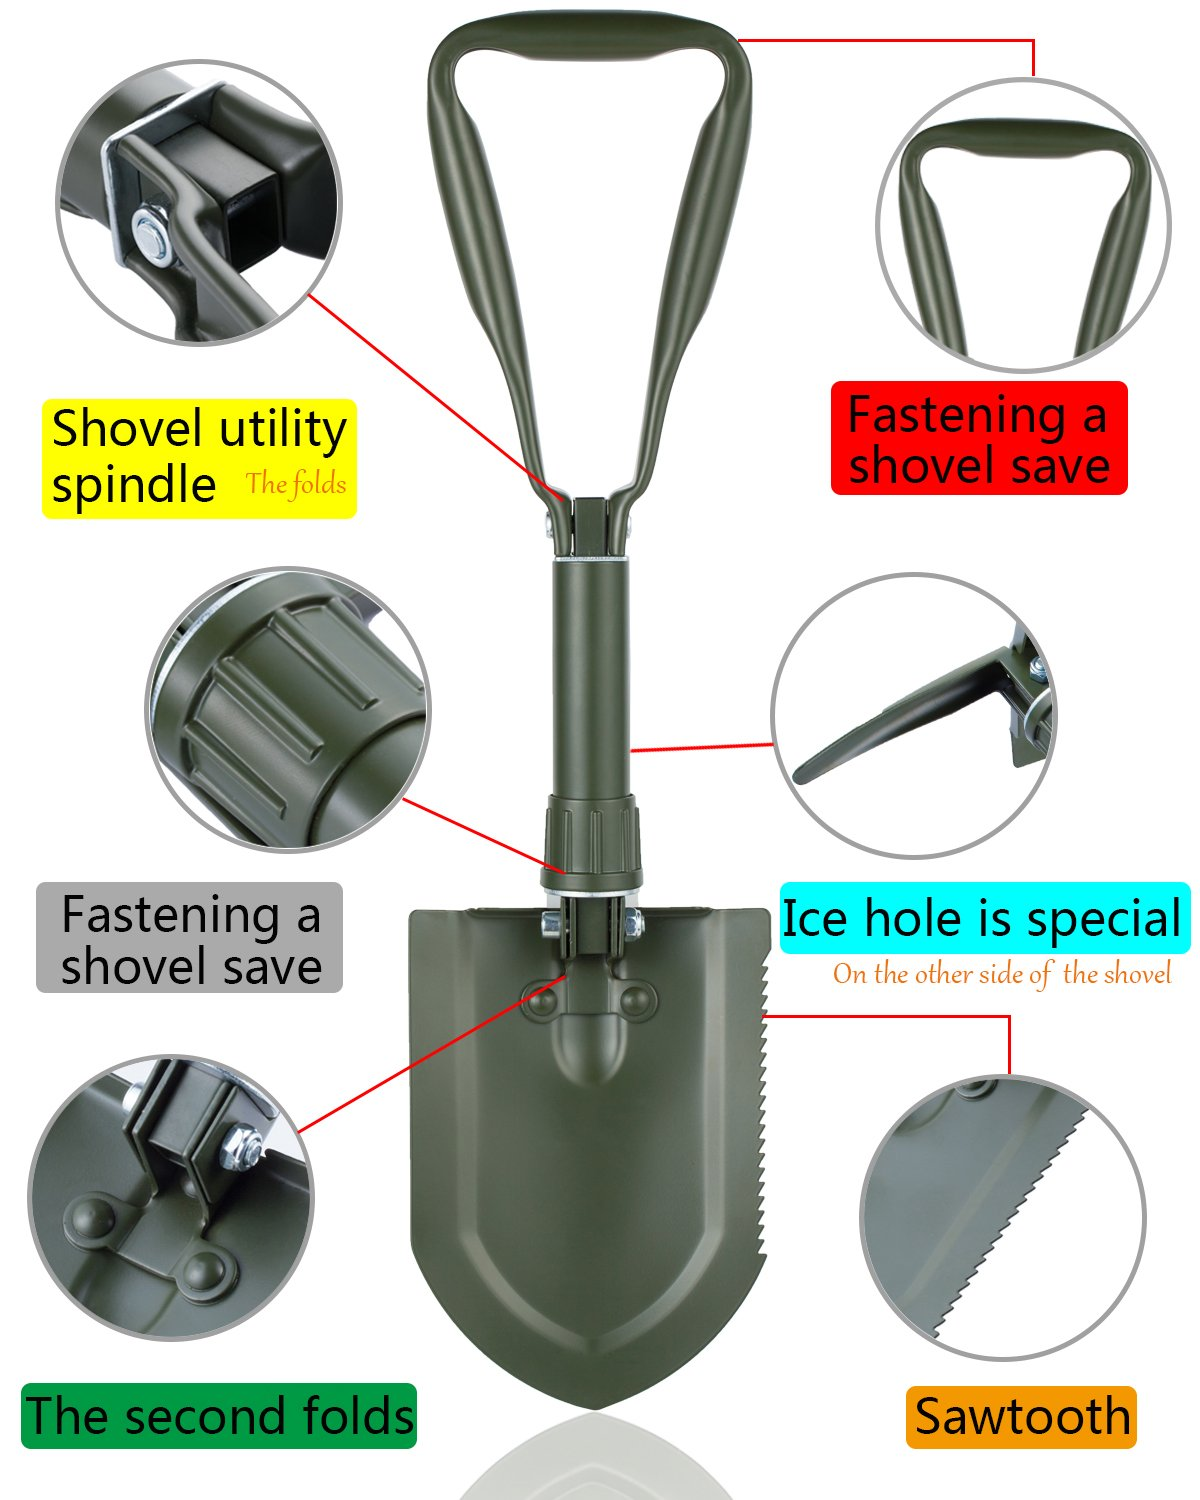 Songwin Military Portable Folding Shovel,Compact Camping Gear for Car,Gardening,Snow Shovel with Carry Pouch.